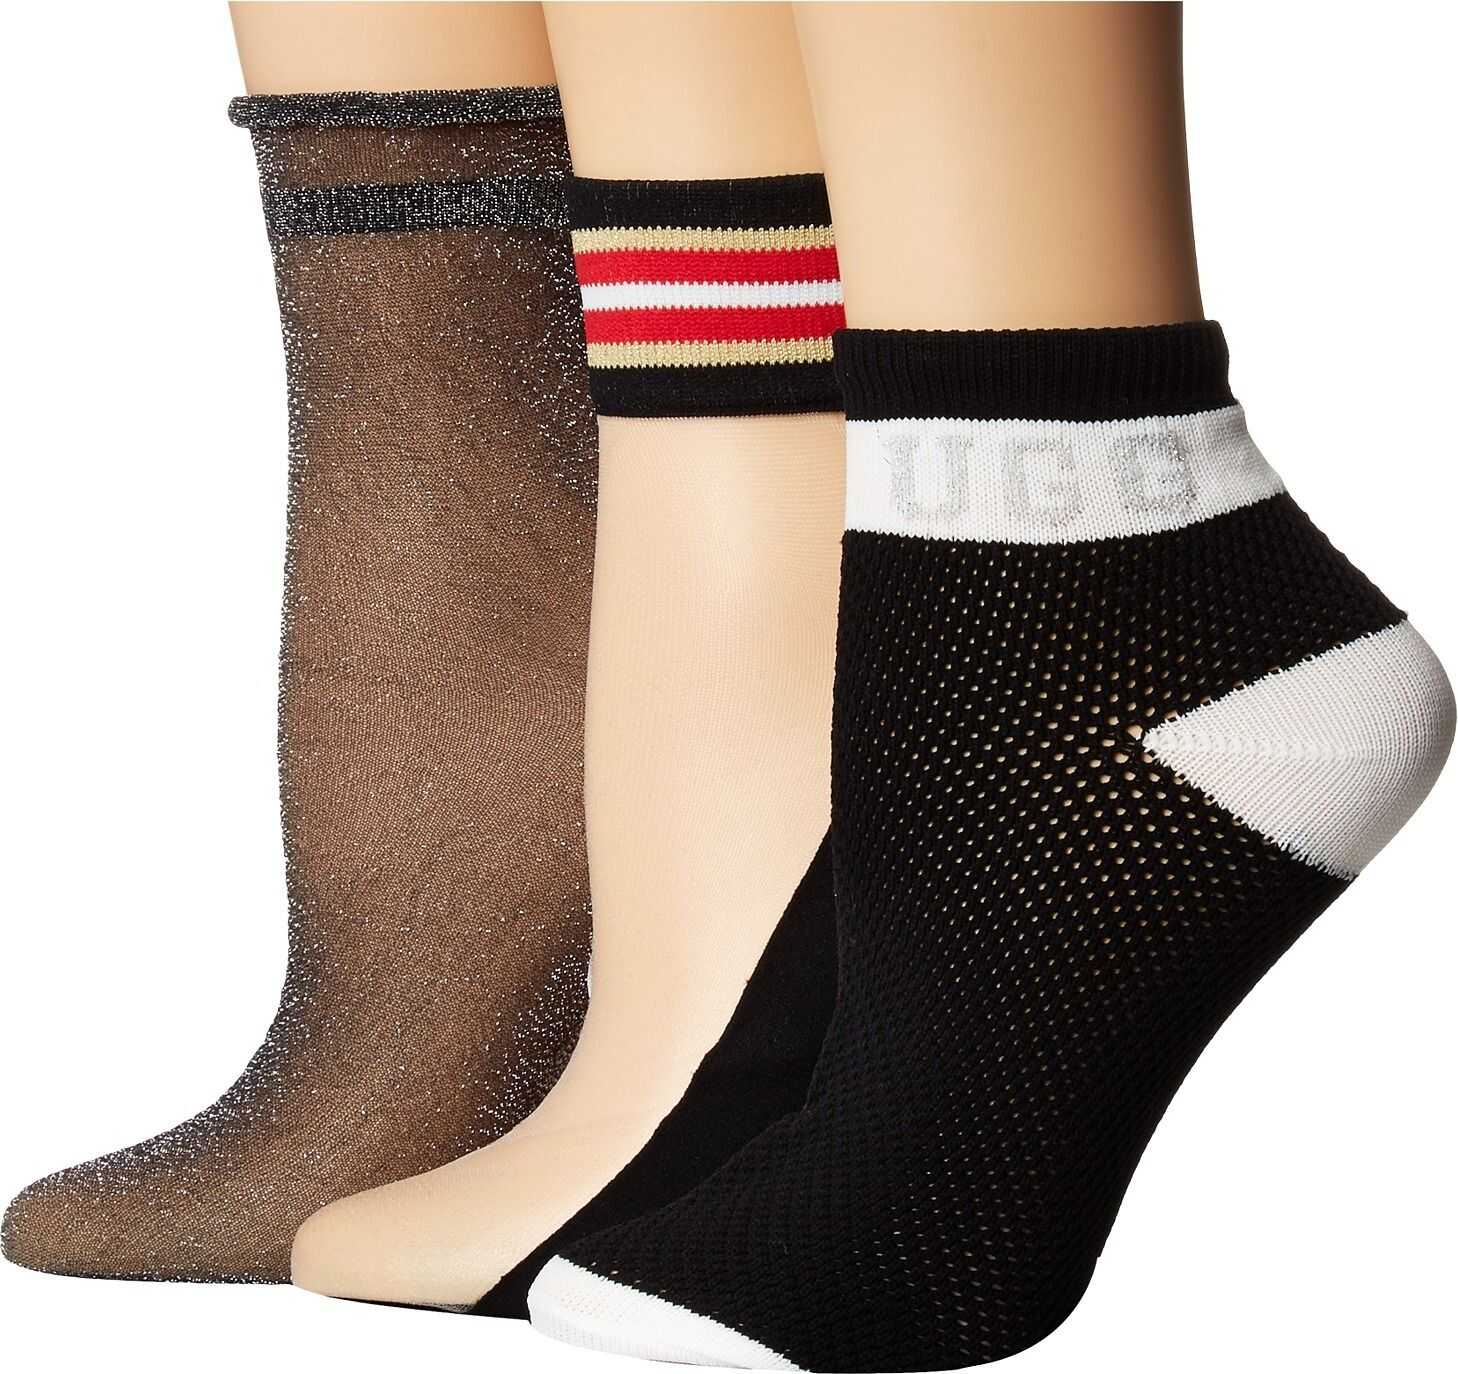 UGG Ash Ankle Socks Gift Set Multi